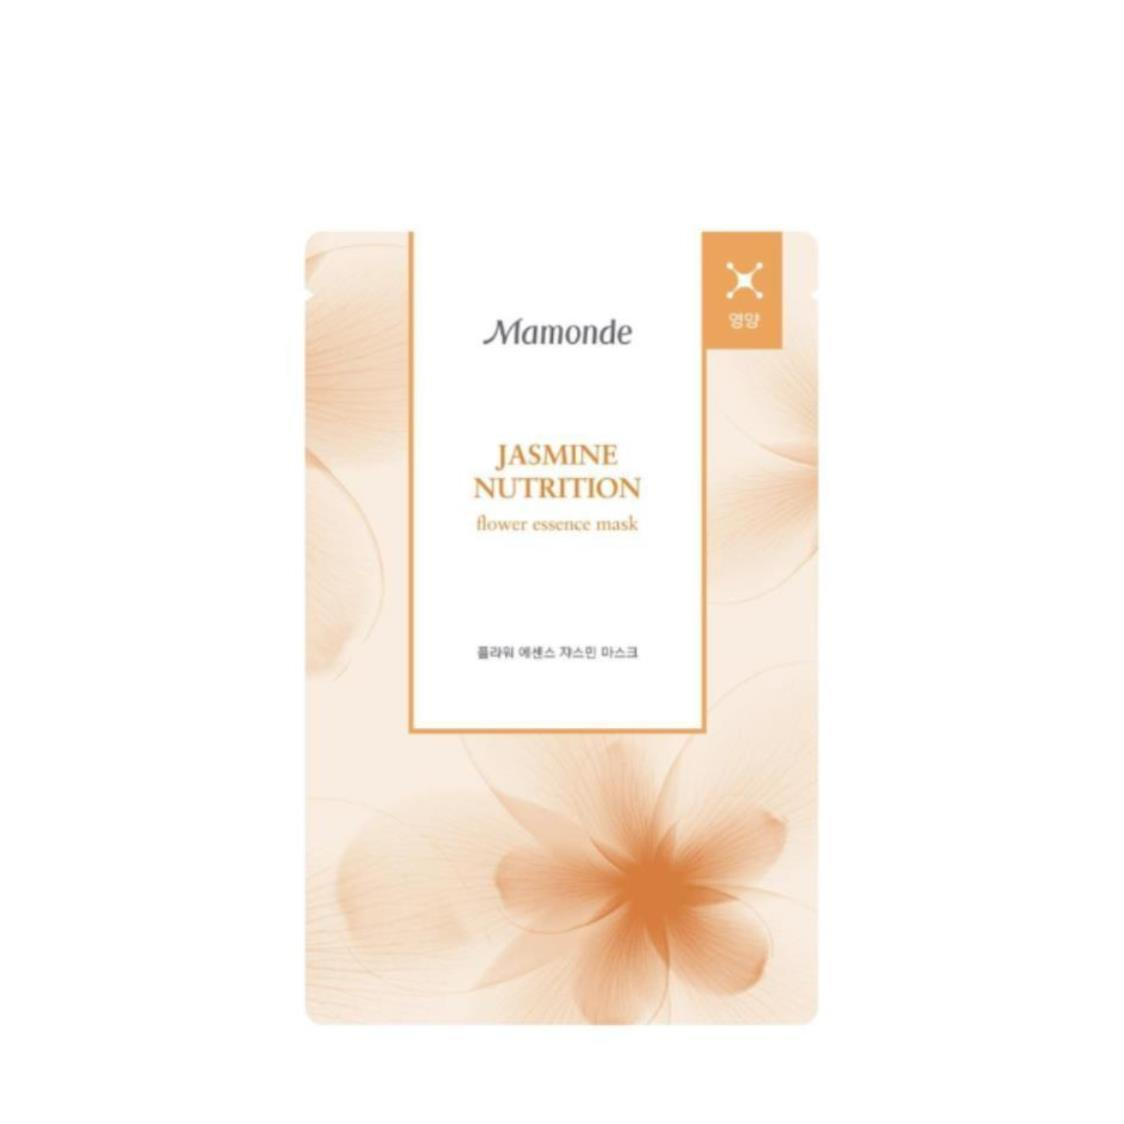 Flower Essence Mask-Nutrition 1 Sheet